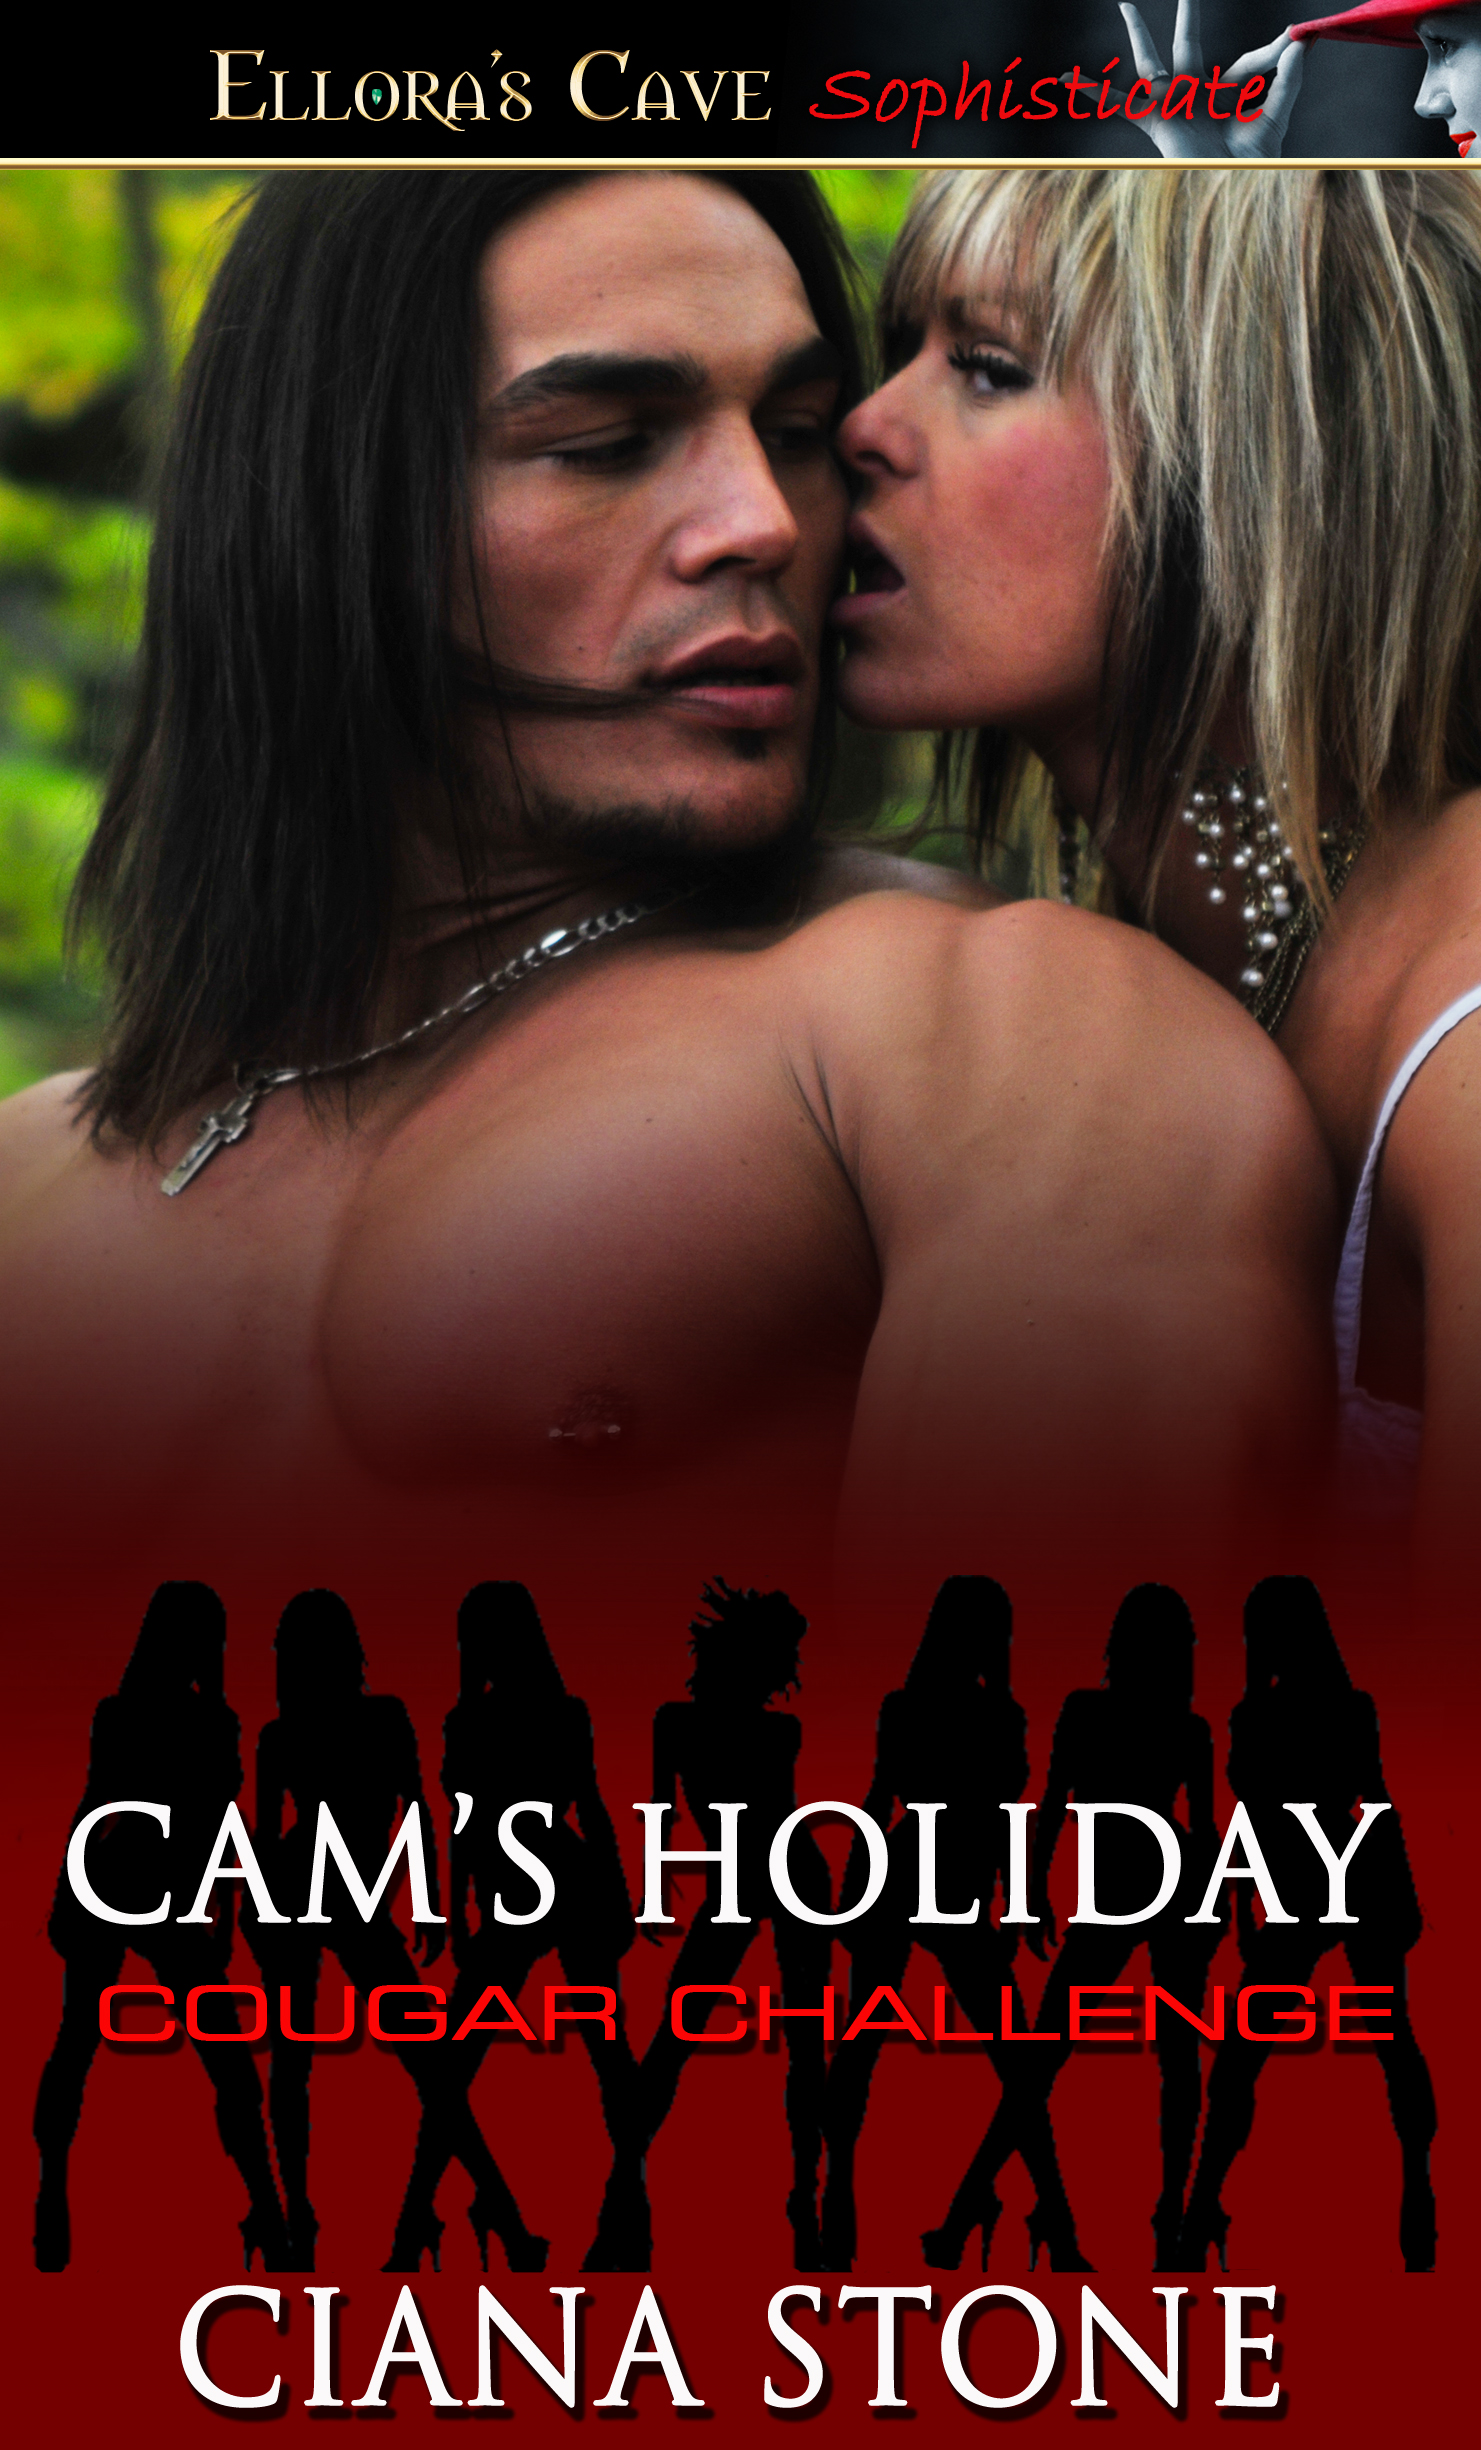 camsholiday_HiRes.jpg